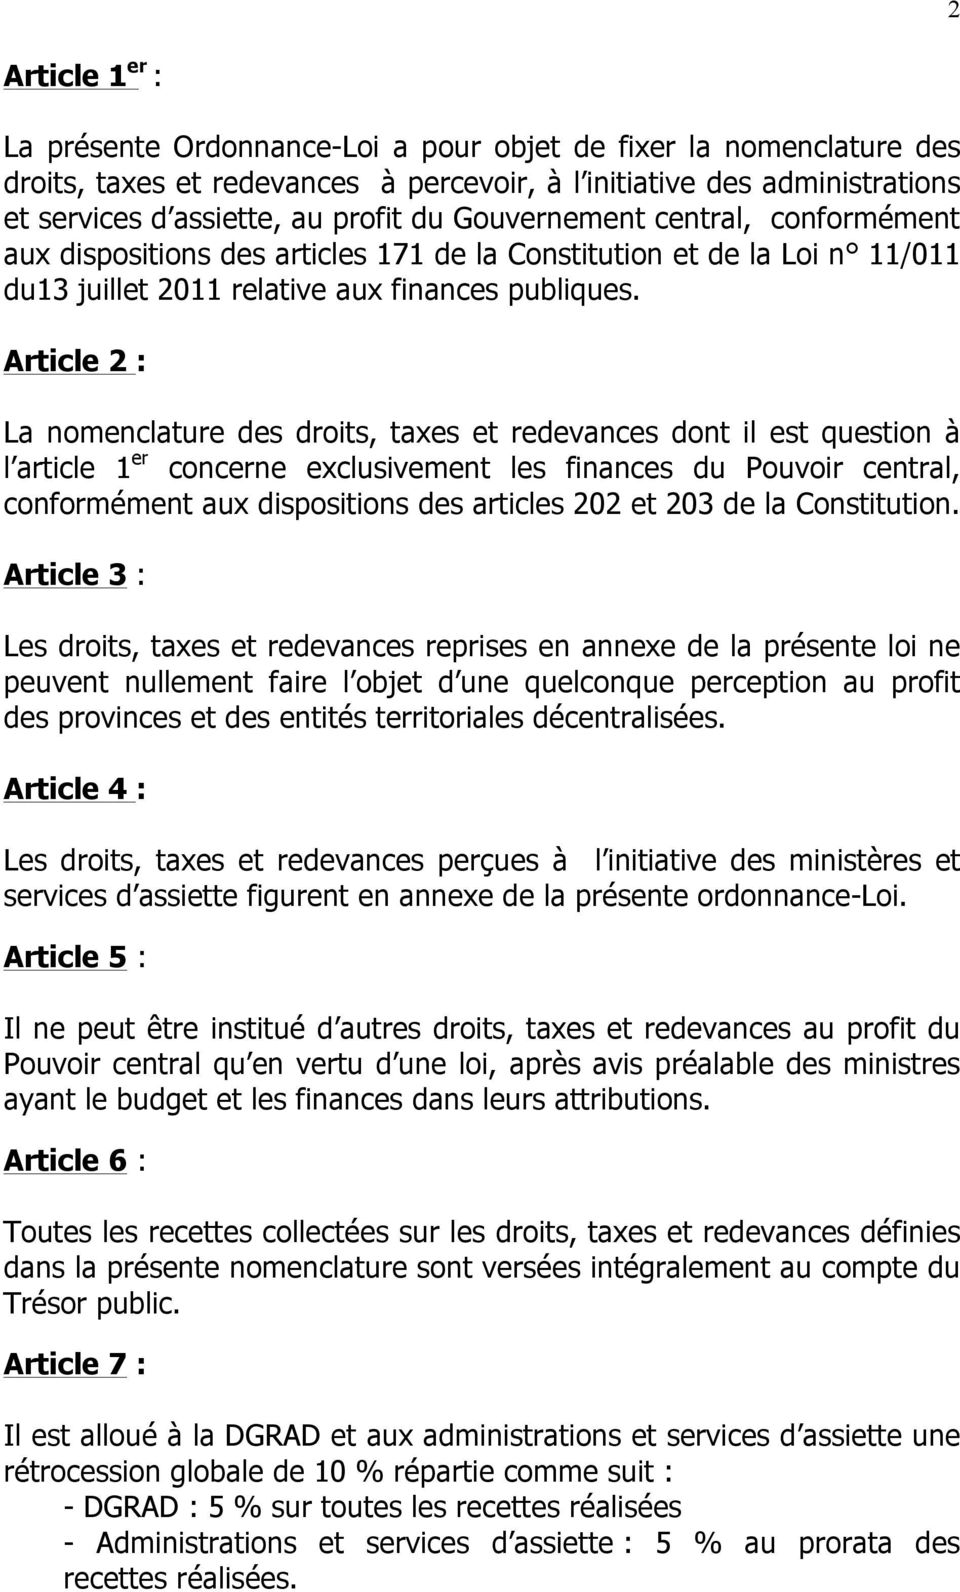 Article 2 : La nomenclature des droits, taxes et redevances dont il est question à l article 1 er concerne exclusivement les finances du Pouvoir central, conformément aux dispositions des articles 2